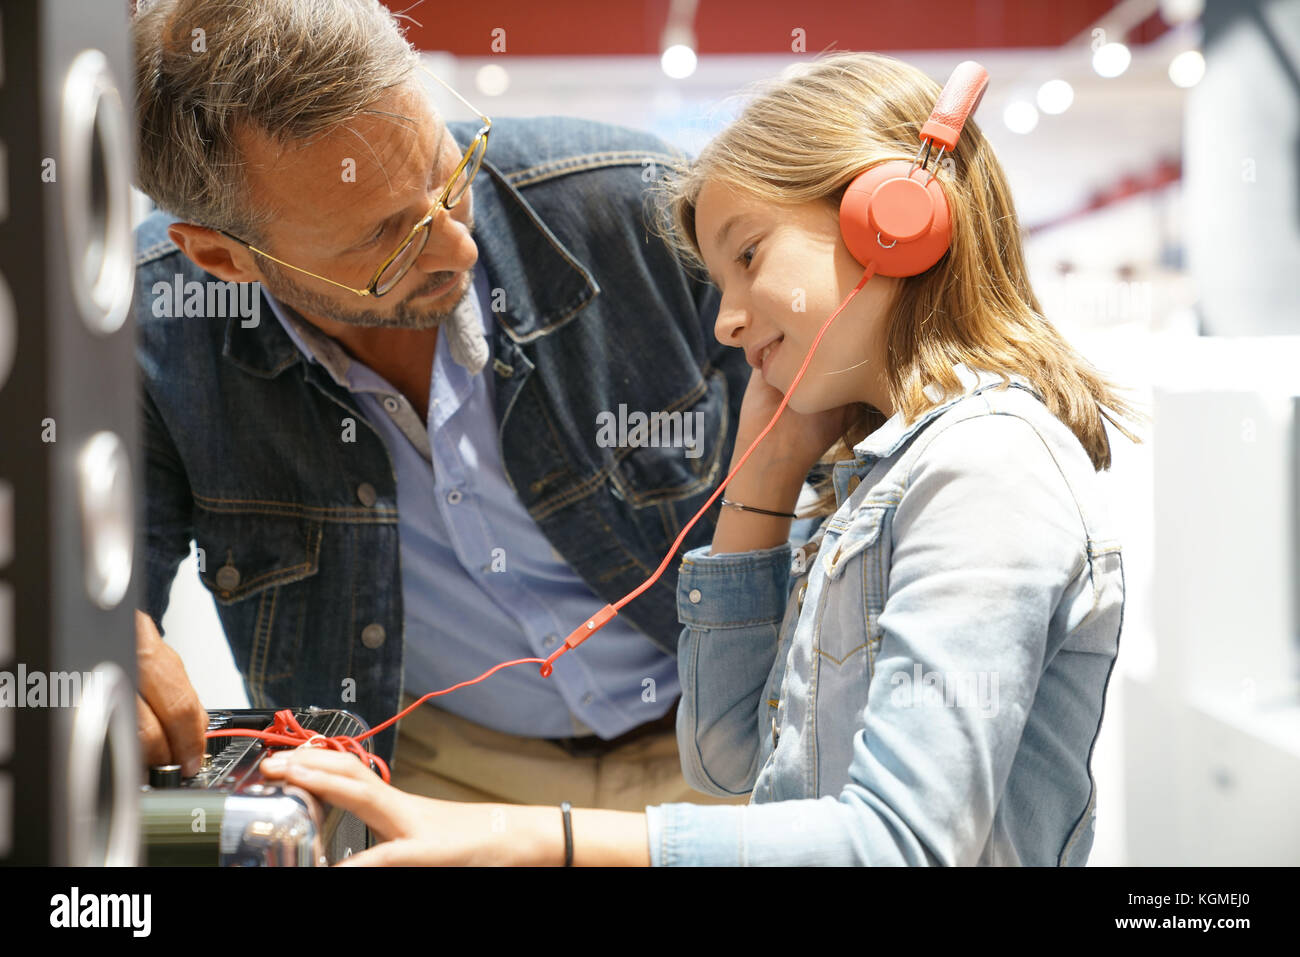 Father and daughter checking music in multimedia store - Stock Image